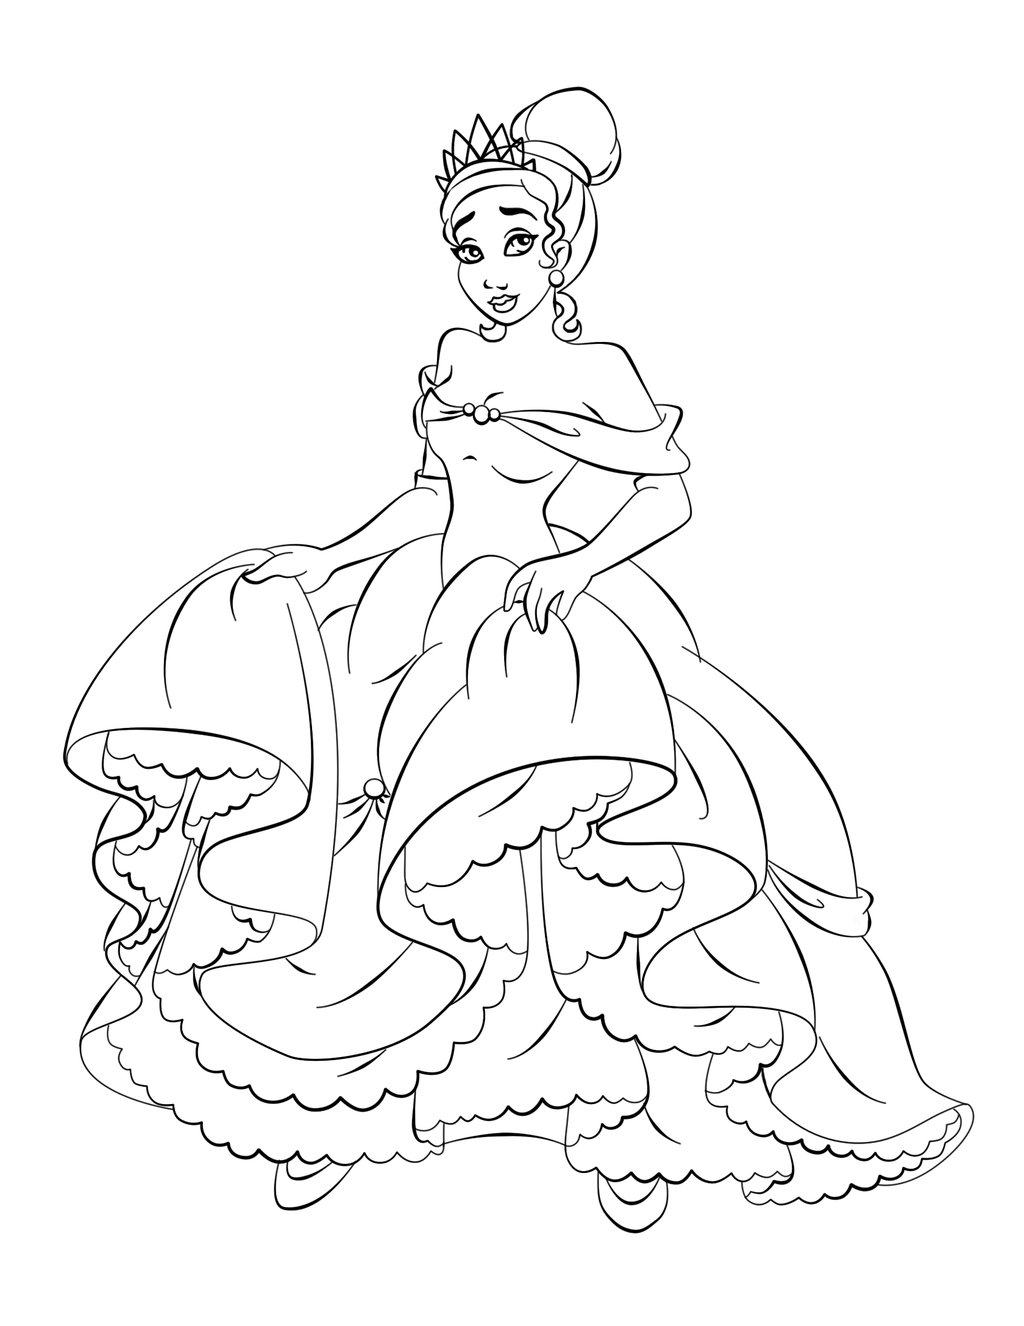 Coloring Pages Halloween Princess : Disney princess tiana coloring pages to girls